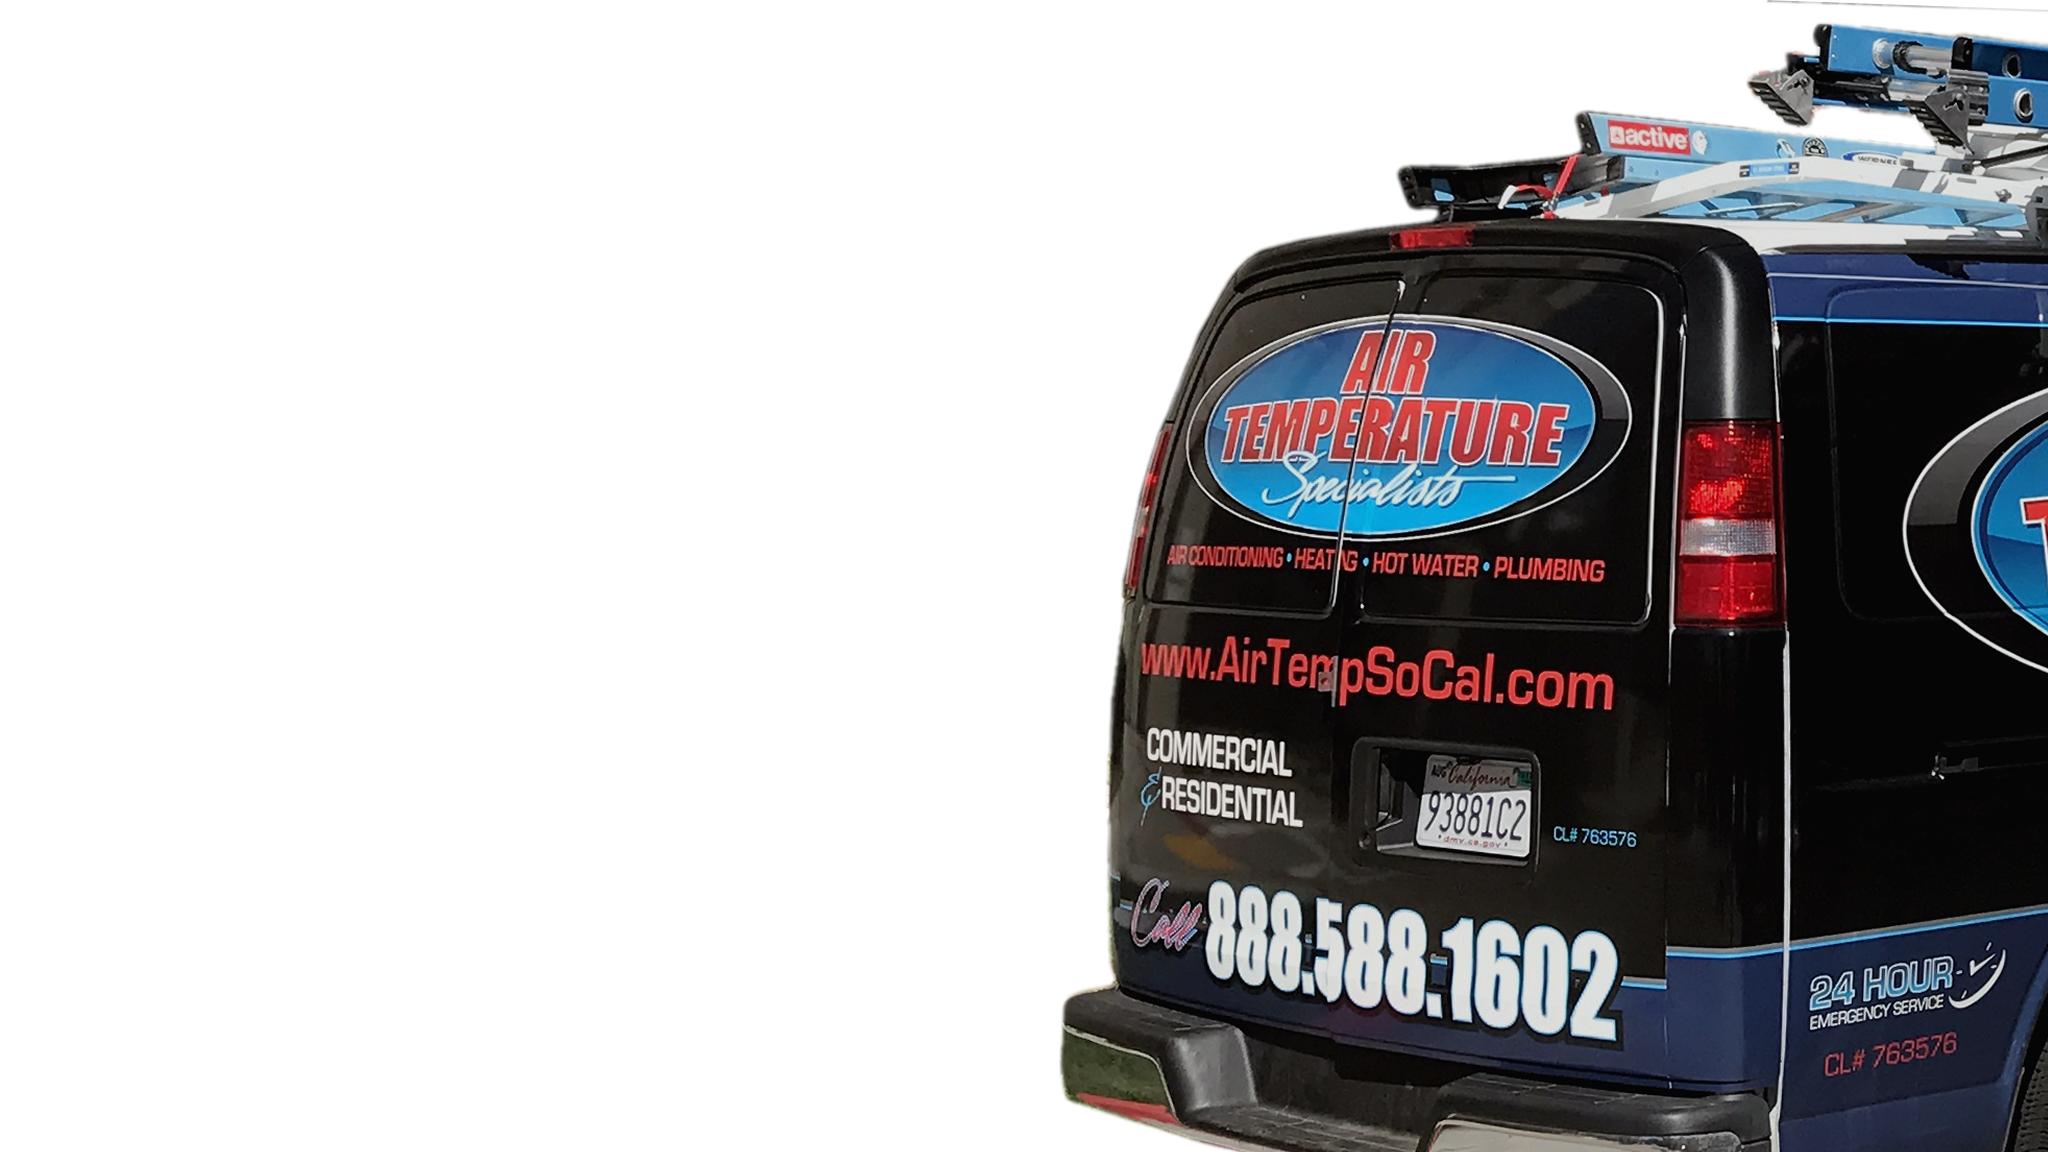 Back of ATS Van advertising air conditioning, heating, hot water and plumbing repair in Murrieta